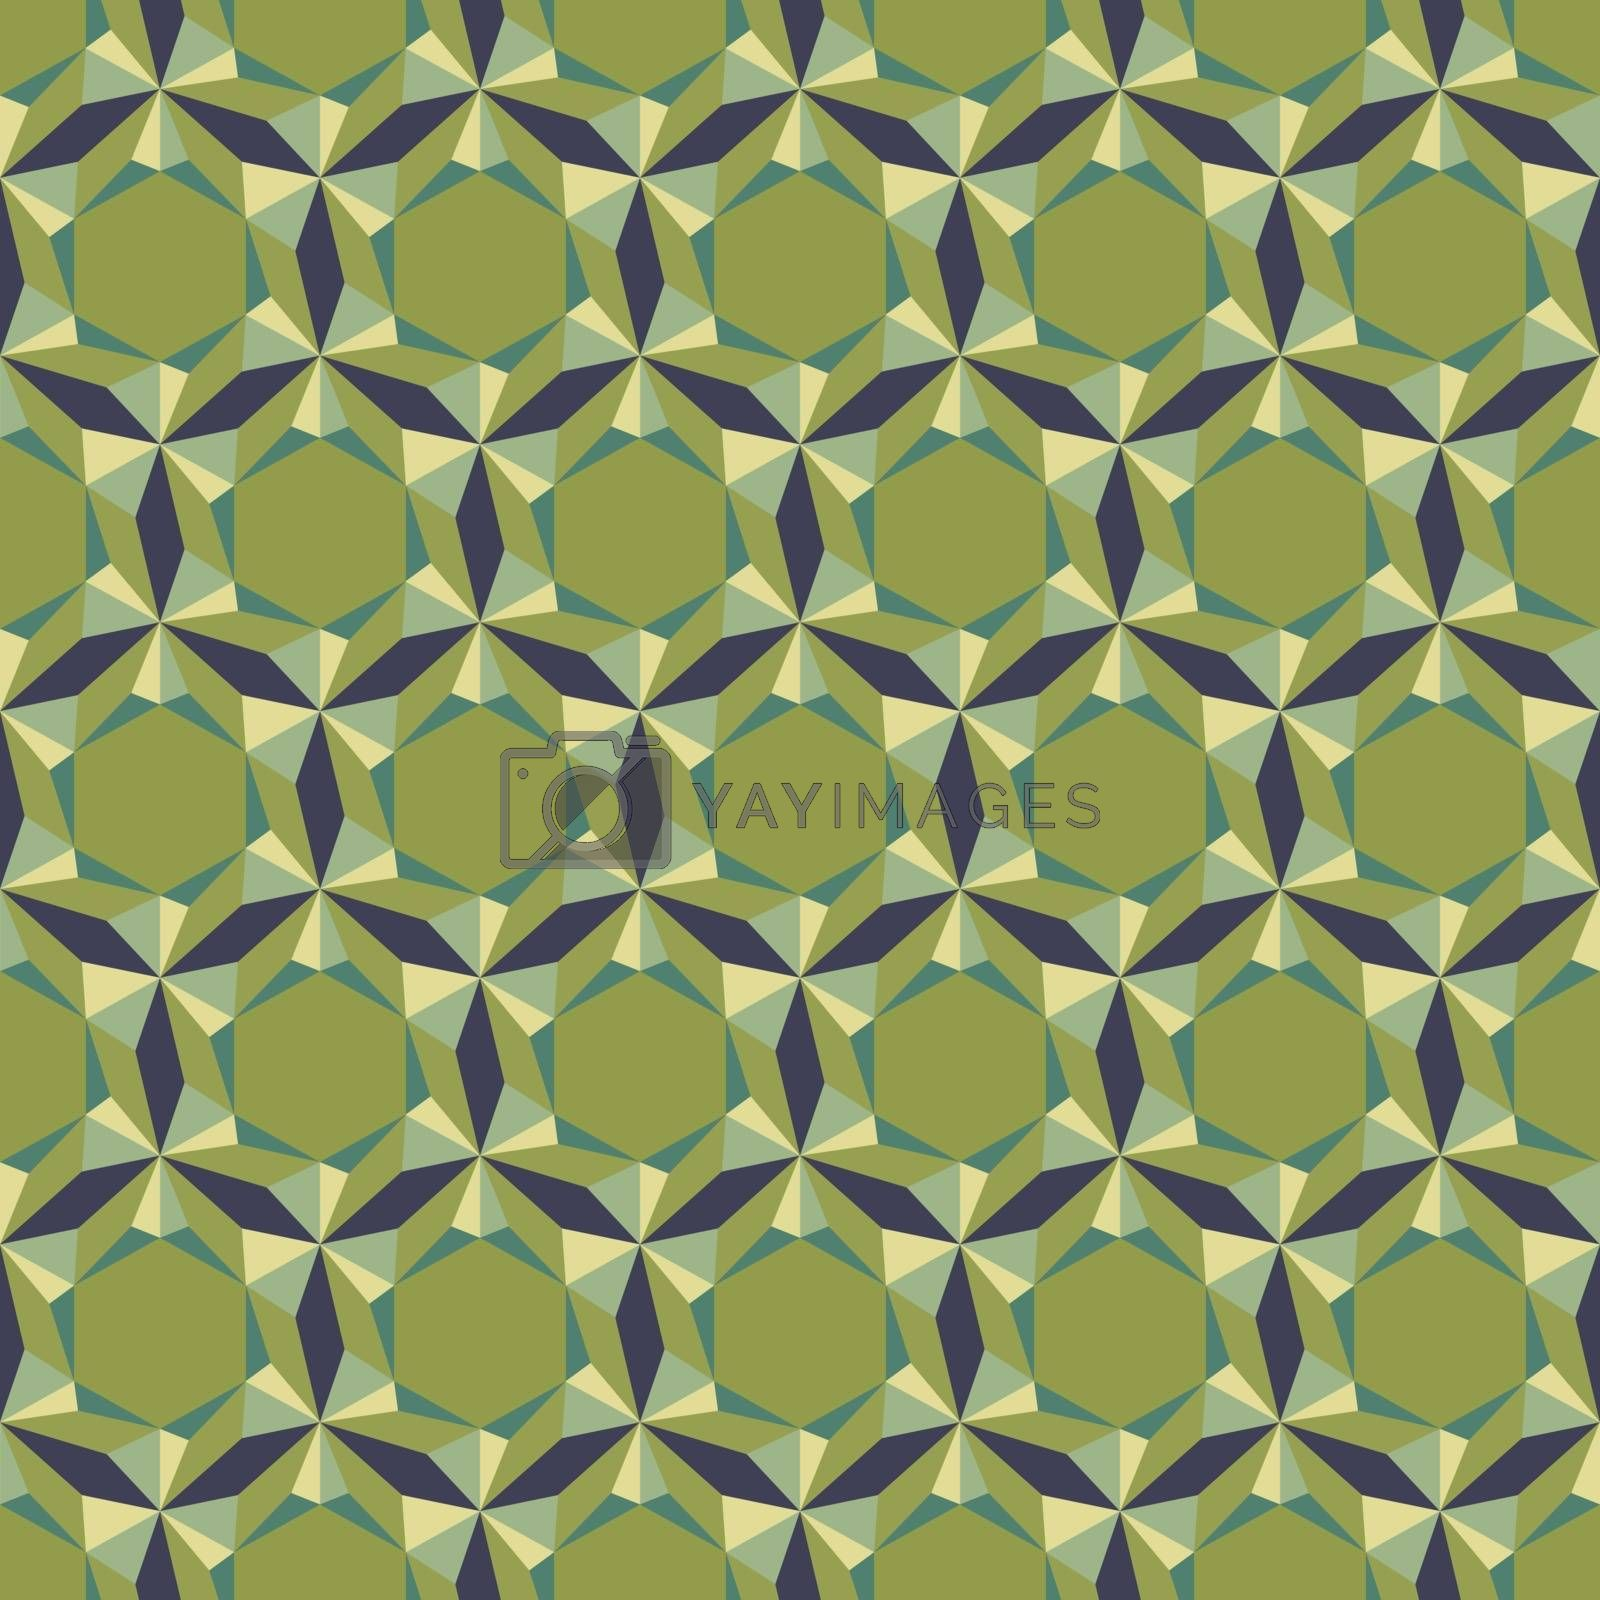 Abstract Seamless Background. Mosaic. Vector Illustration. Can Be Used For Wallpaper, Web Page Background, Book Cover.